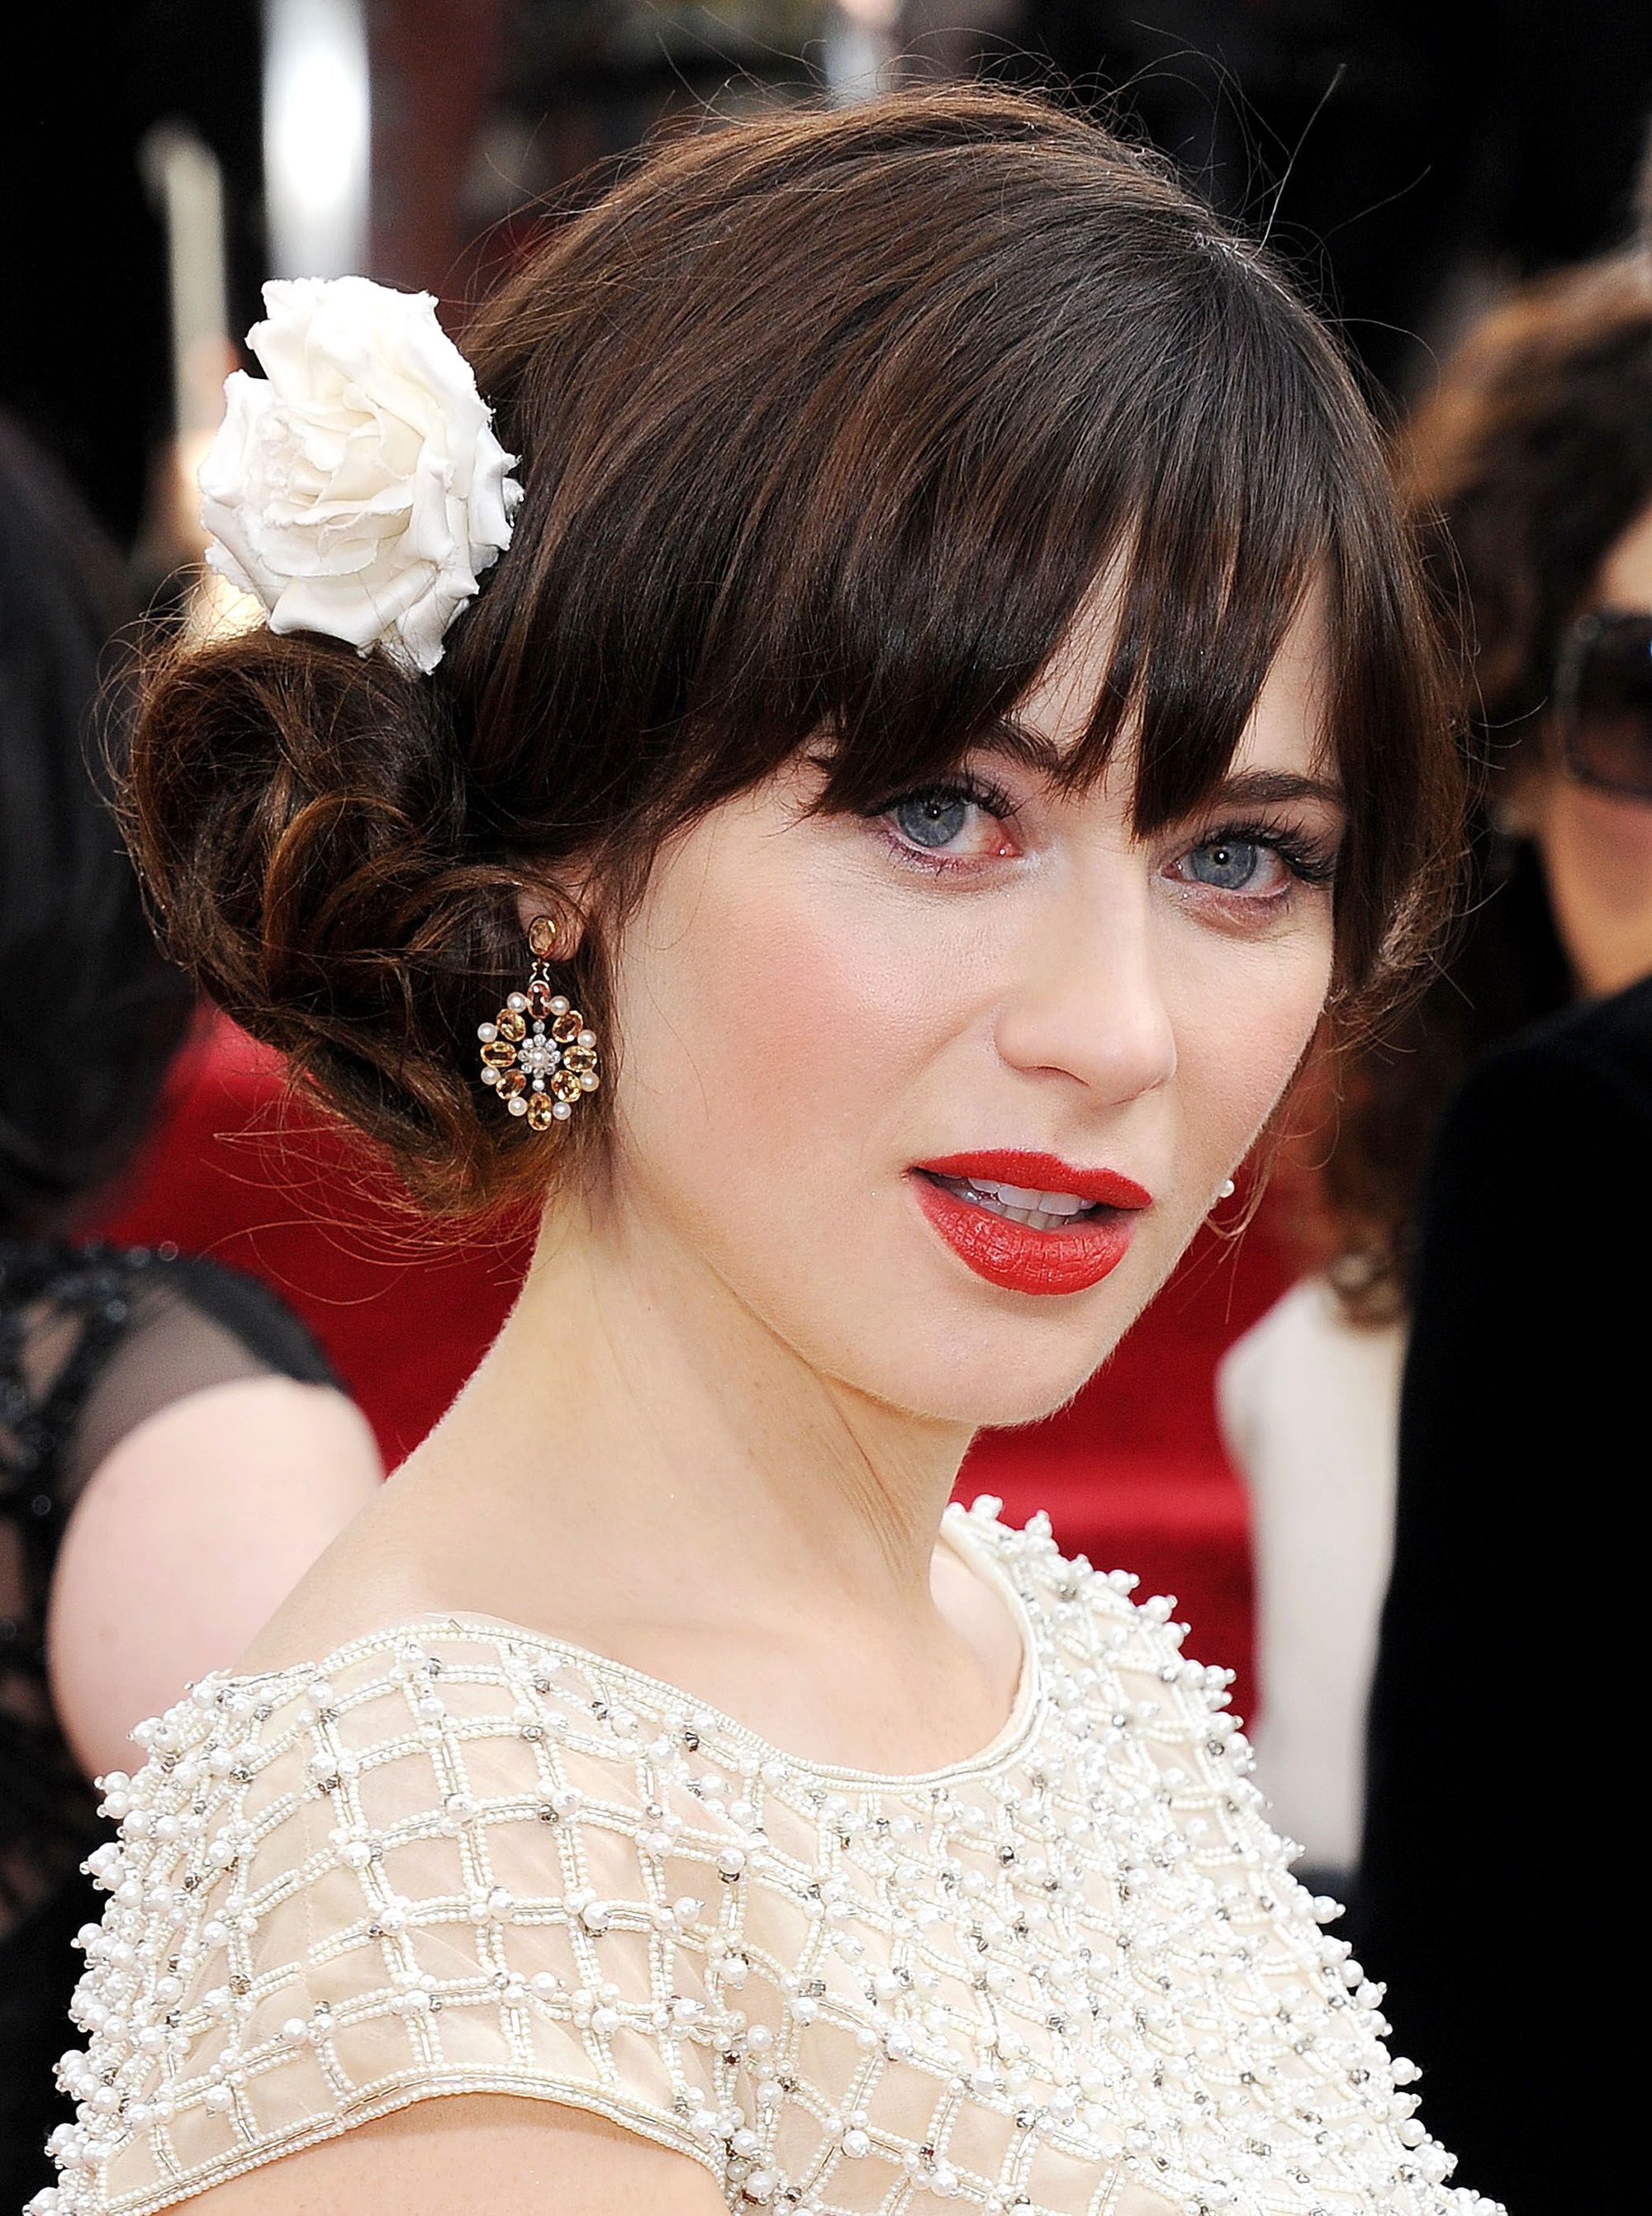 Vintage hairstyles for long hair: Close up shot of Zooey Deschanel with chocolate brown hair and fringe styled into a vintage low side bun with a floral barrette, wearing white on the red carpet